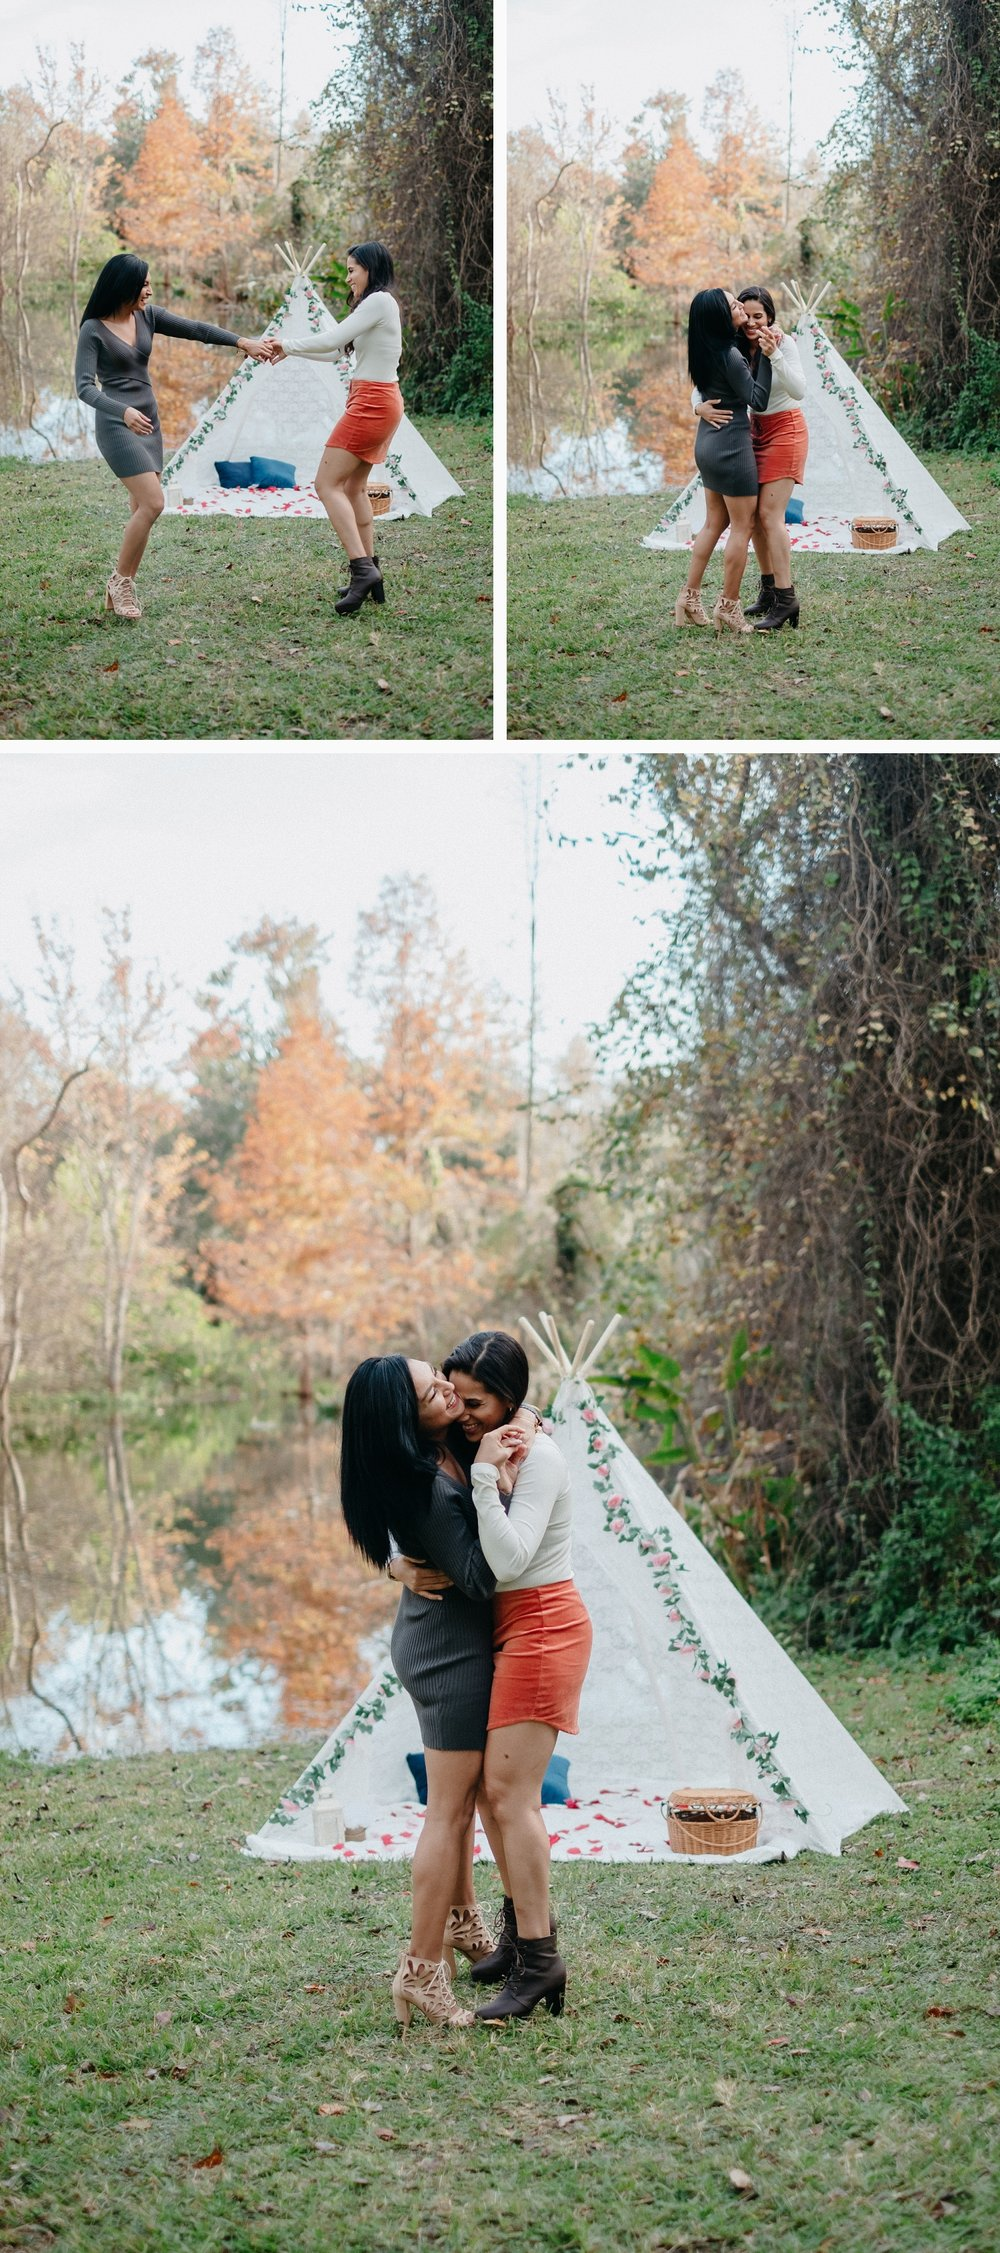 Rubie-And-Stefany-Orlando-Surprise-Proposal-_0016.jpg